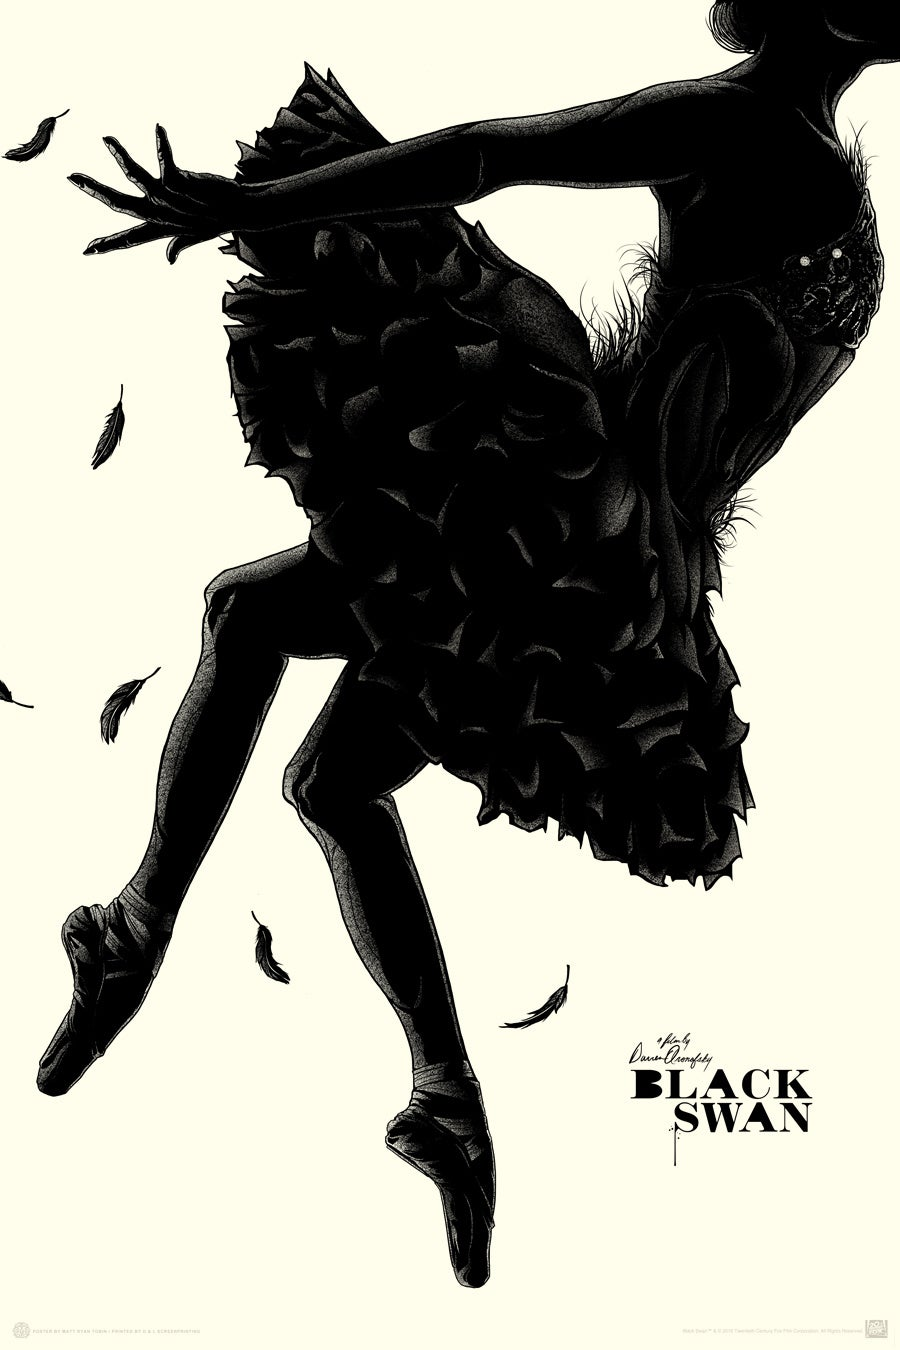 MONDO BLACK SWAN - Regular